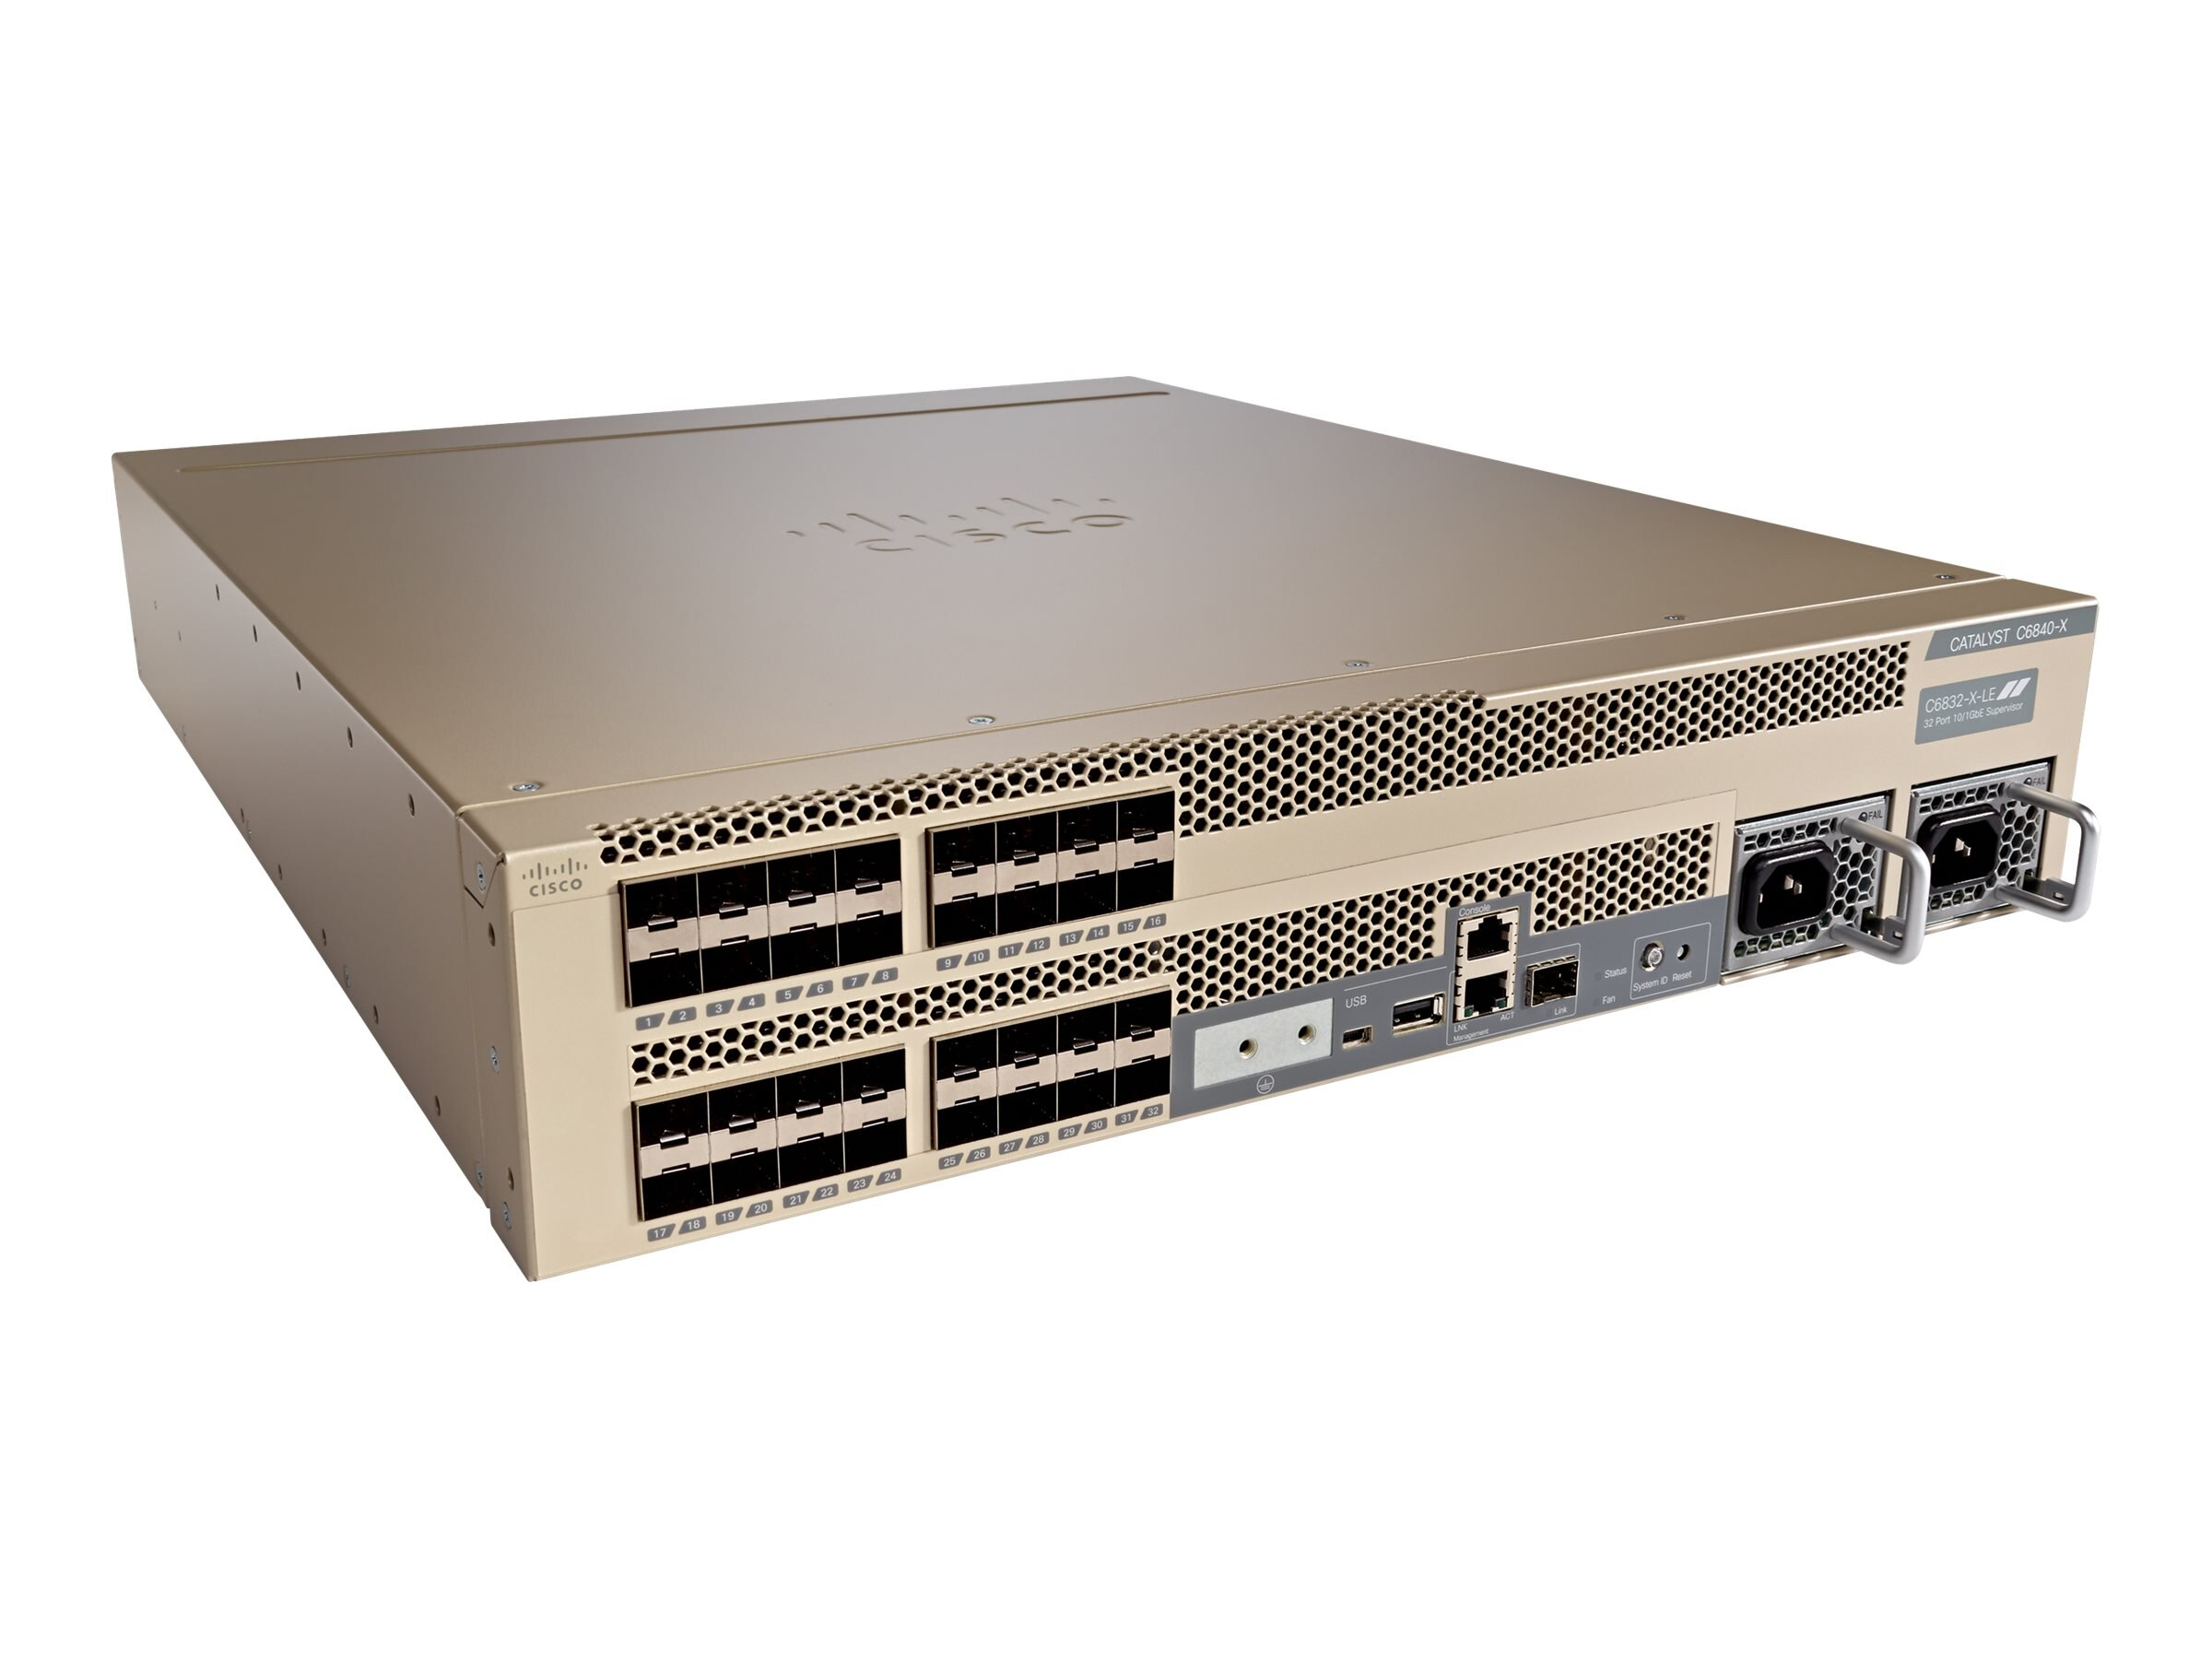 Cisco Catalyst 6832-X Chassis w Std Tables, C6832-X-LE, 30807201, Network Switches